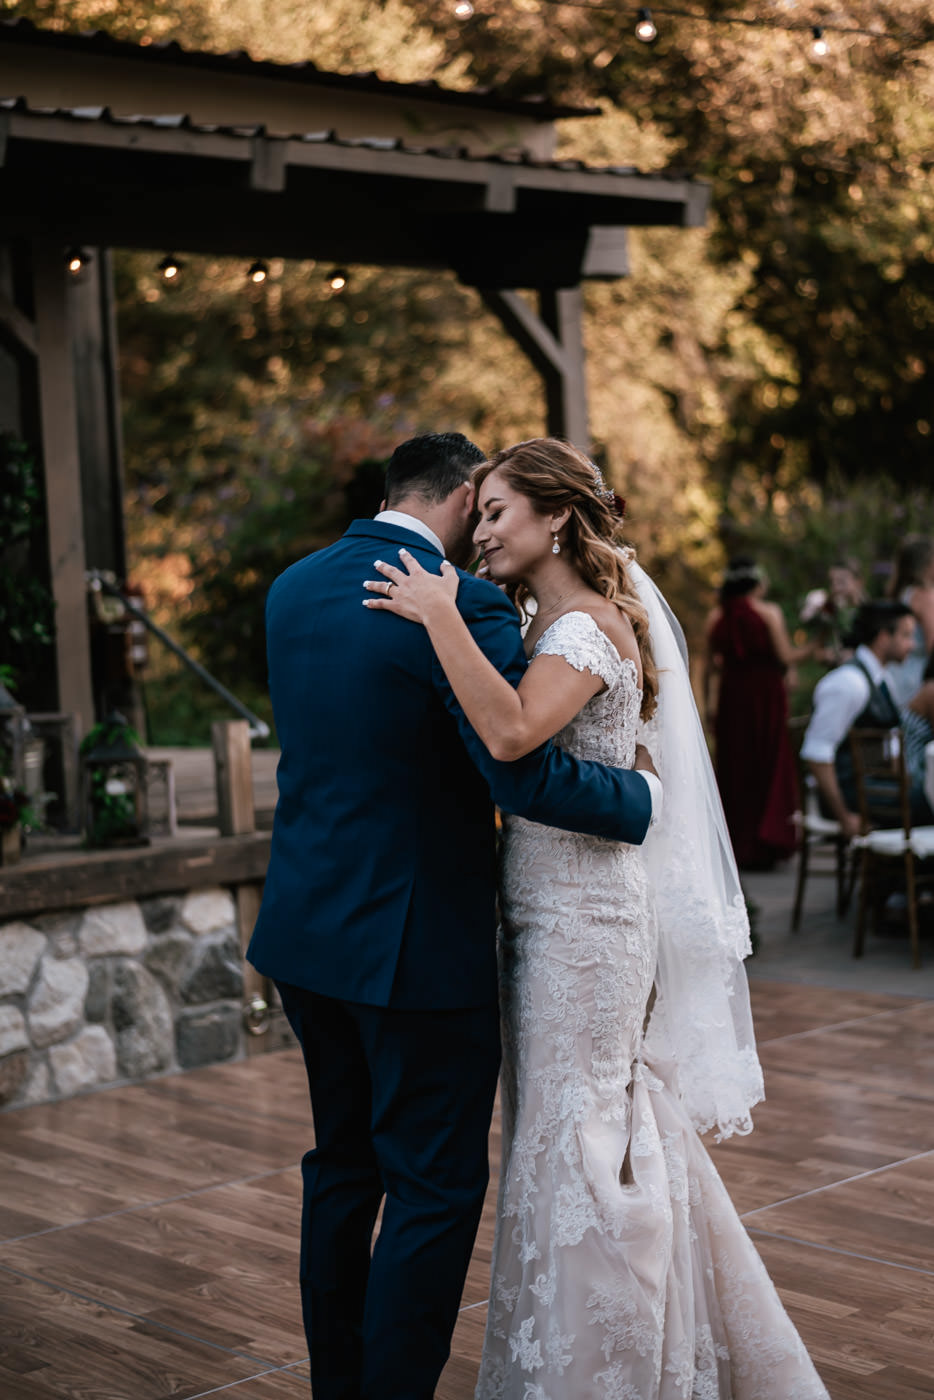 Couple has a lovely first dance at their reception.